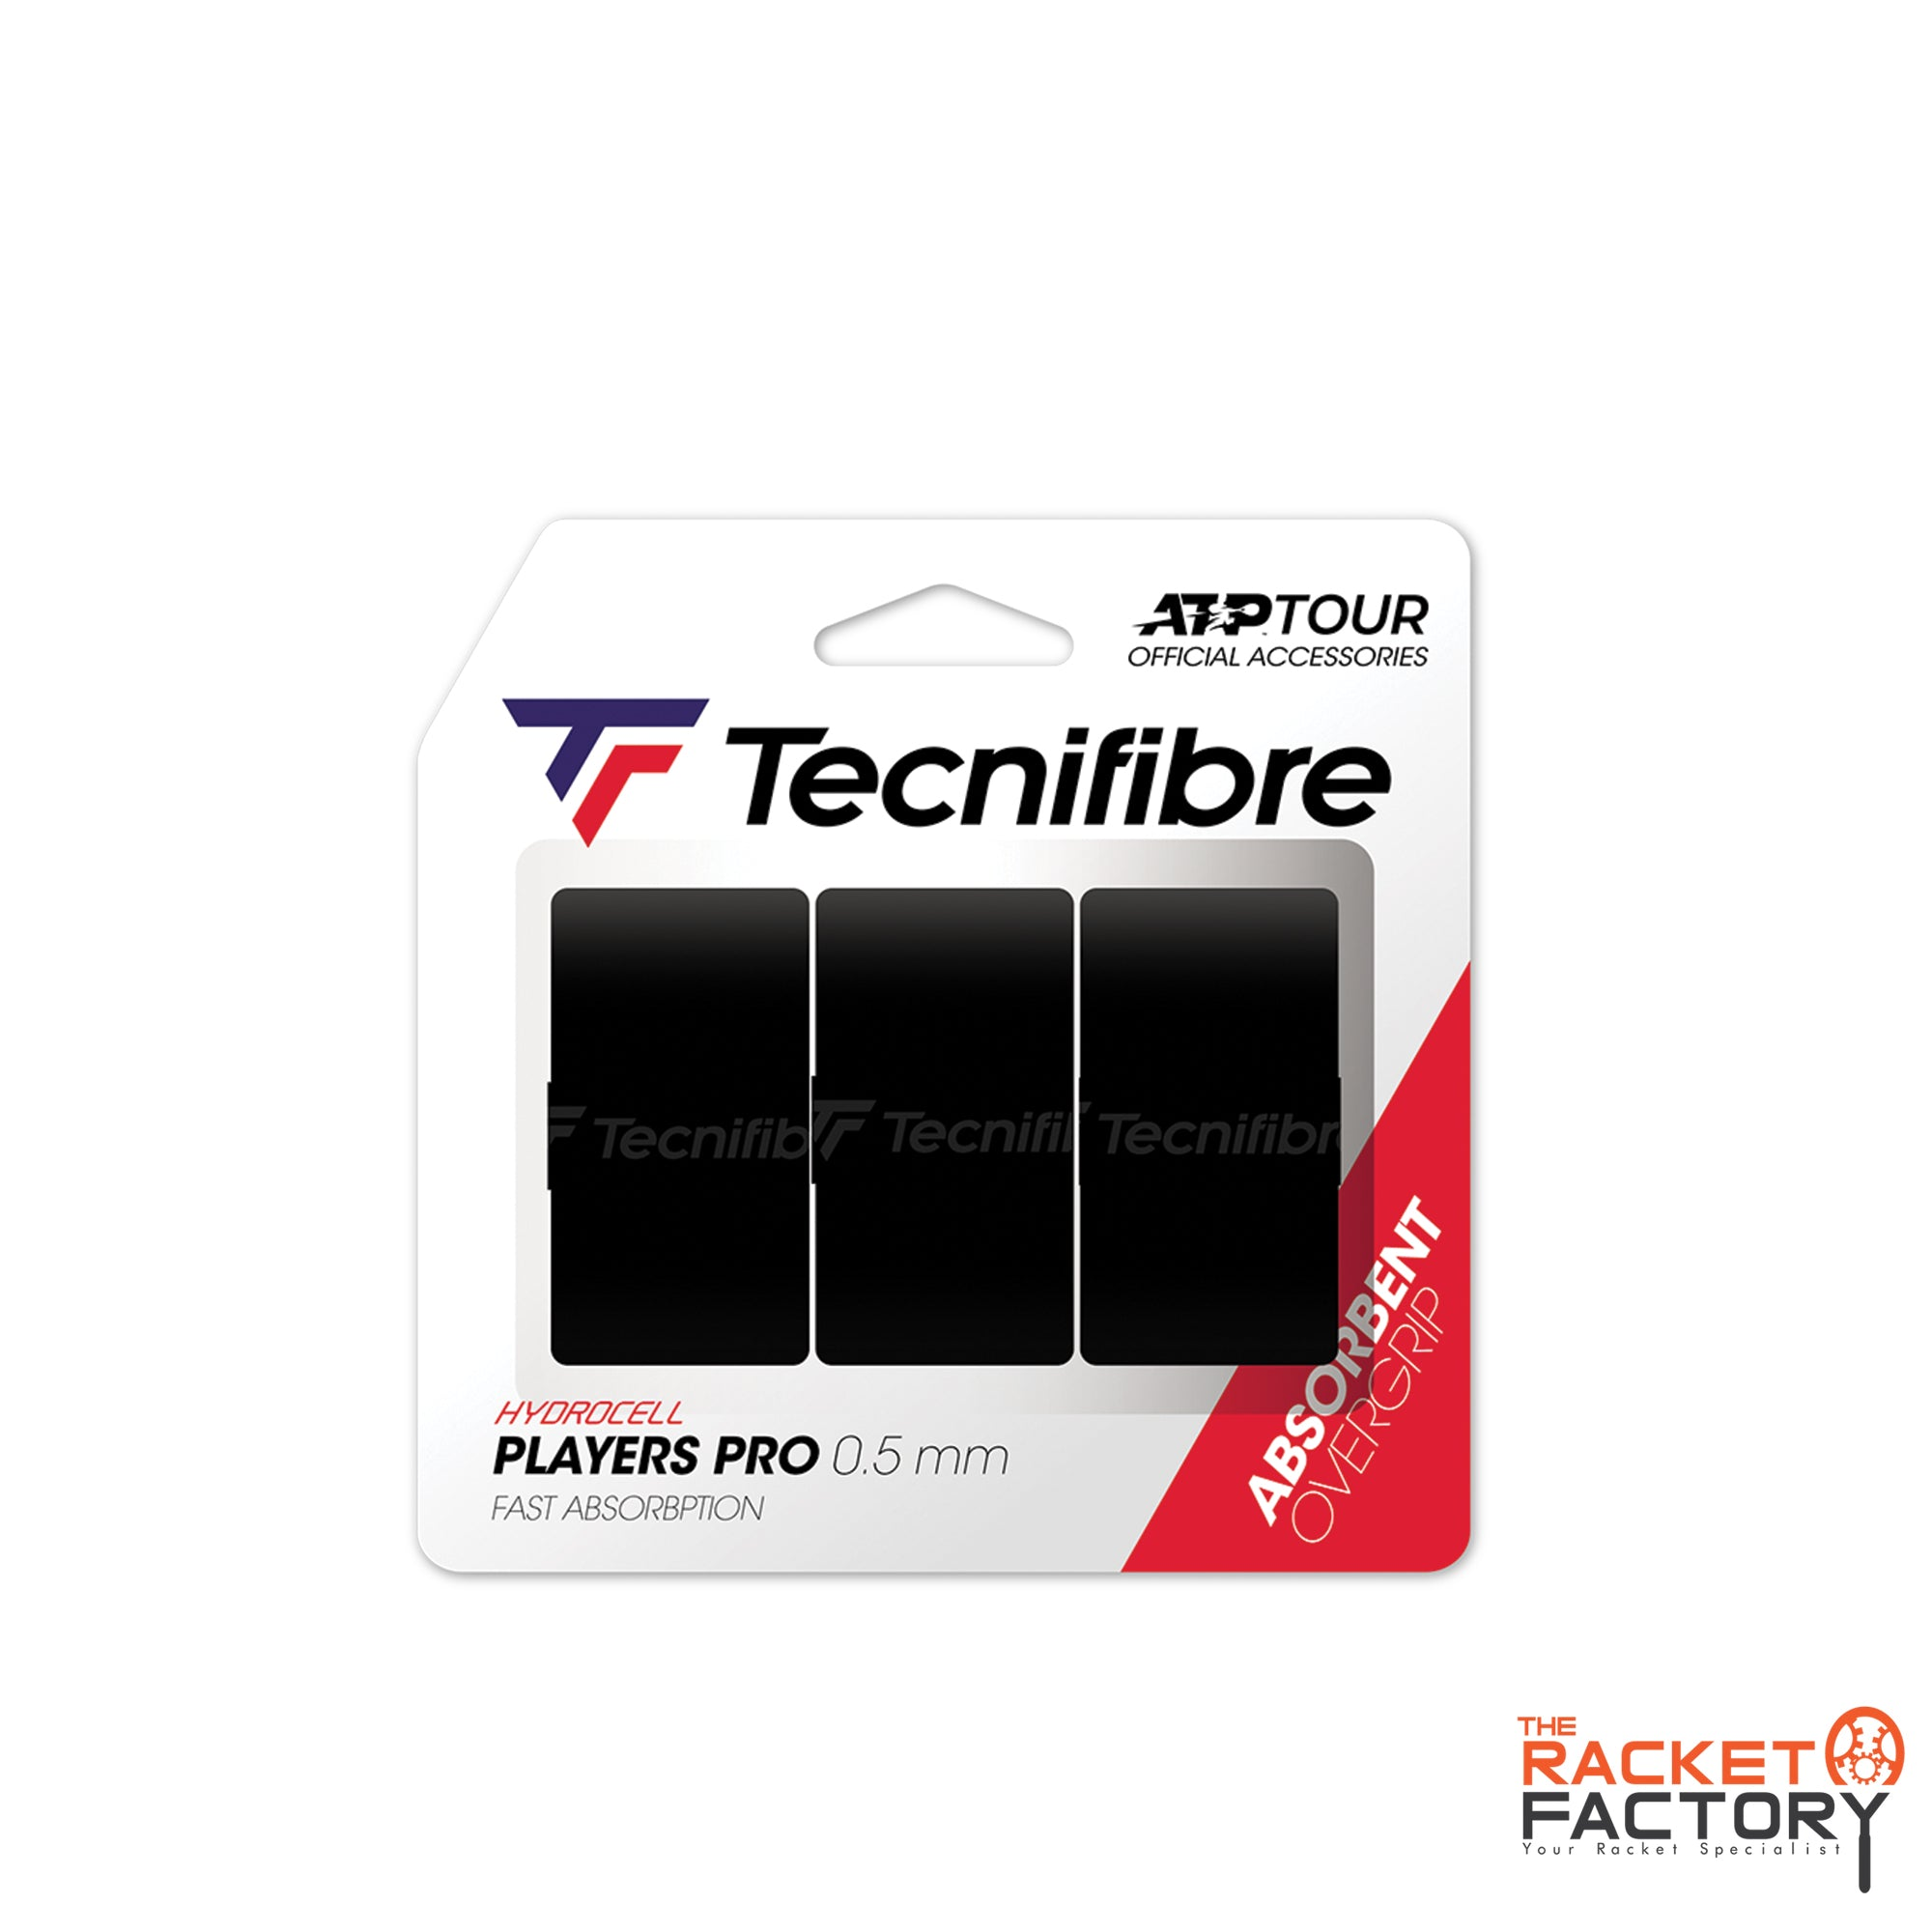 Tecnifibre ATP Players Pro Over Grip - Pack of 3